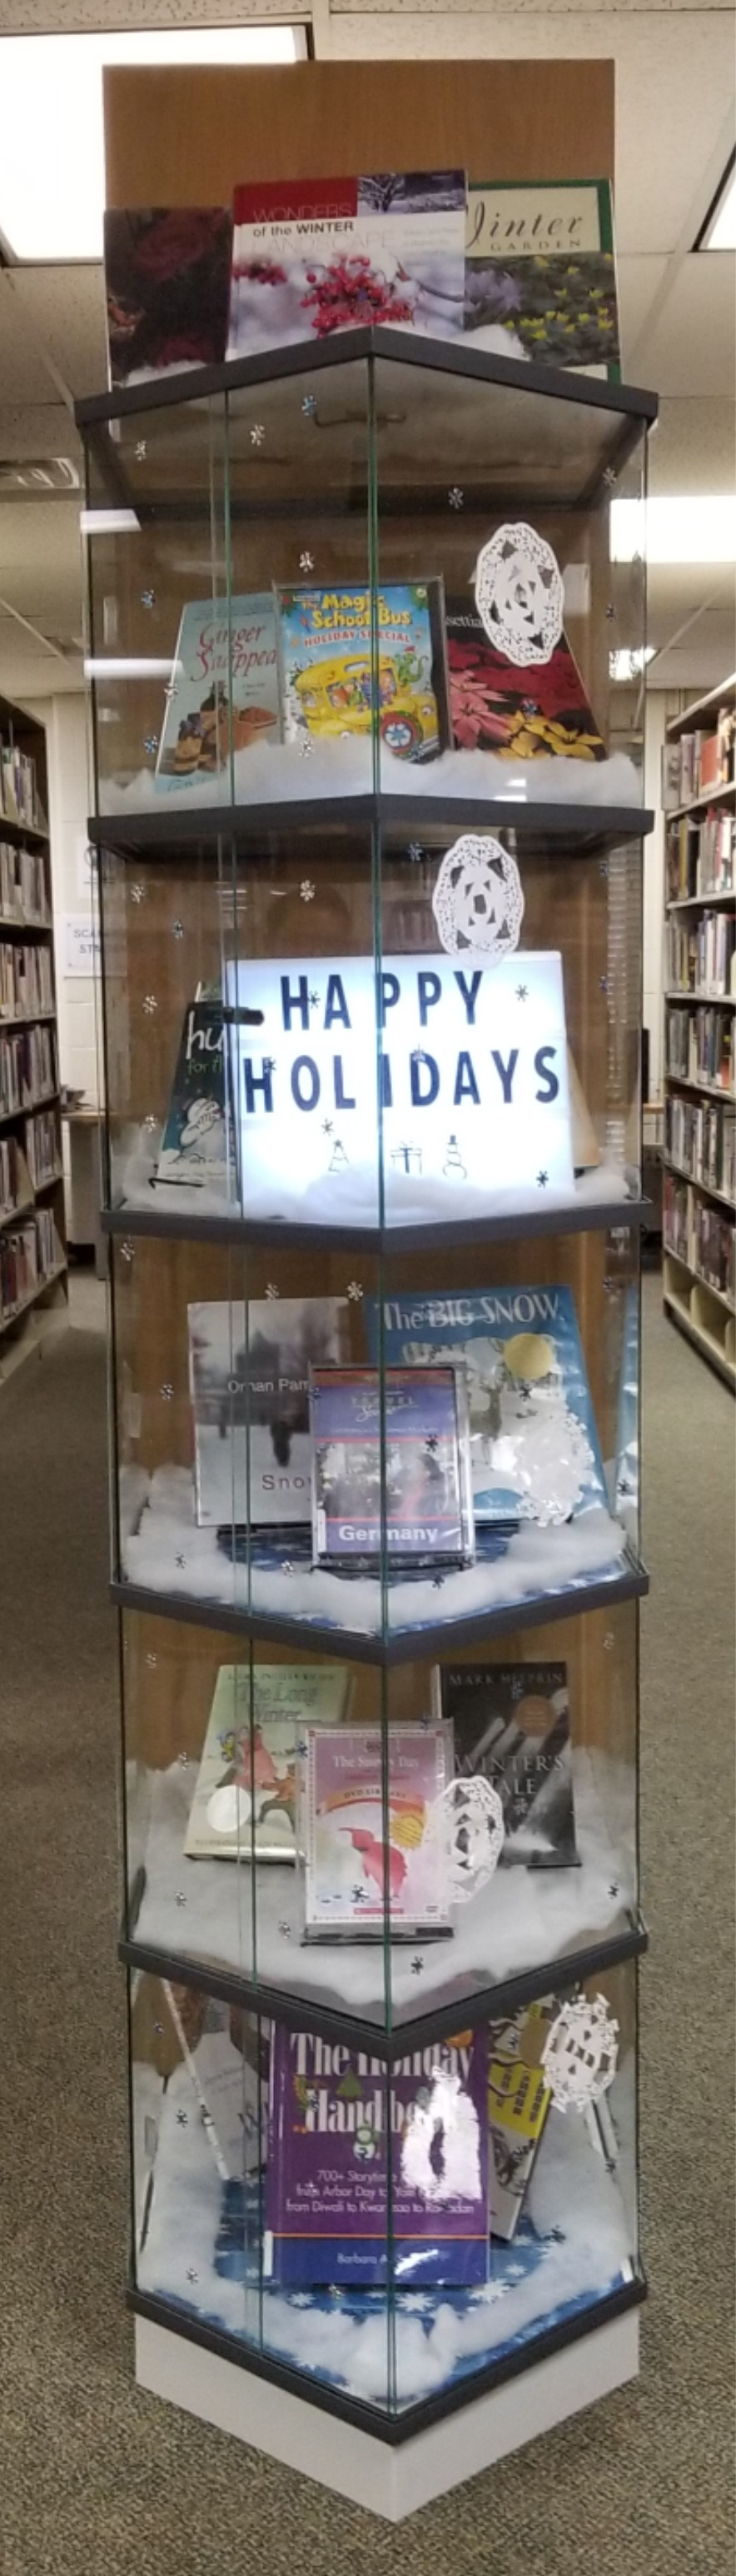 Image:  Display Case, Happy Holidays 2018